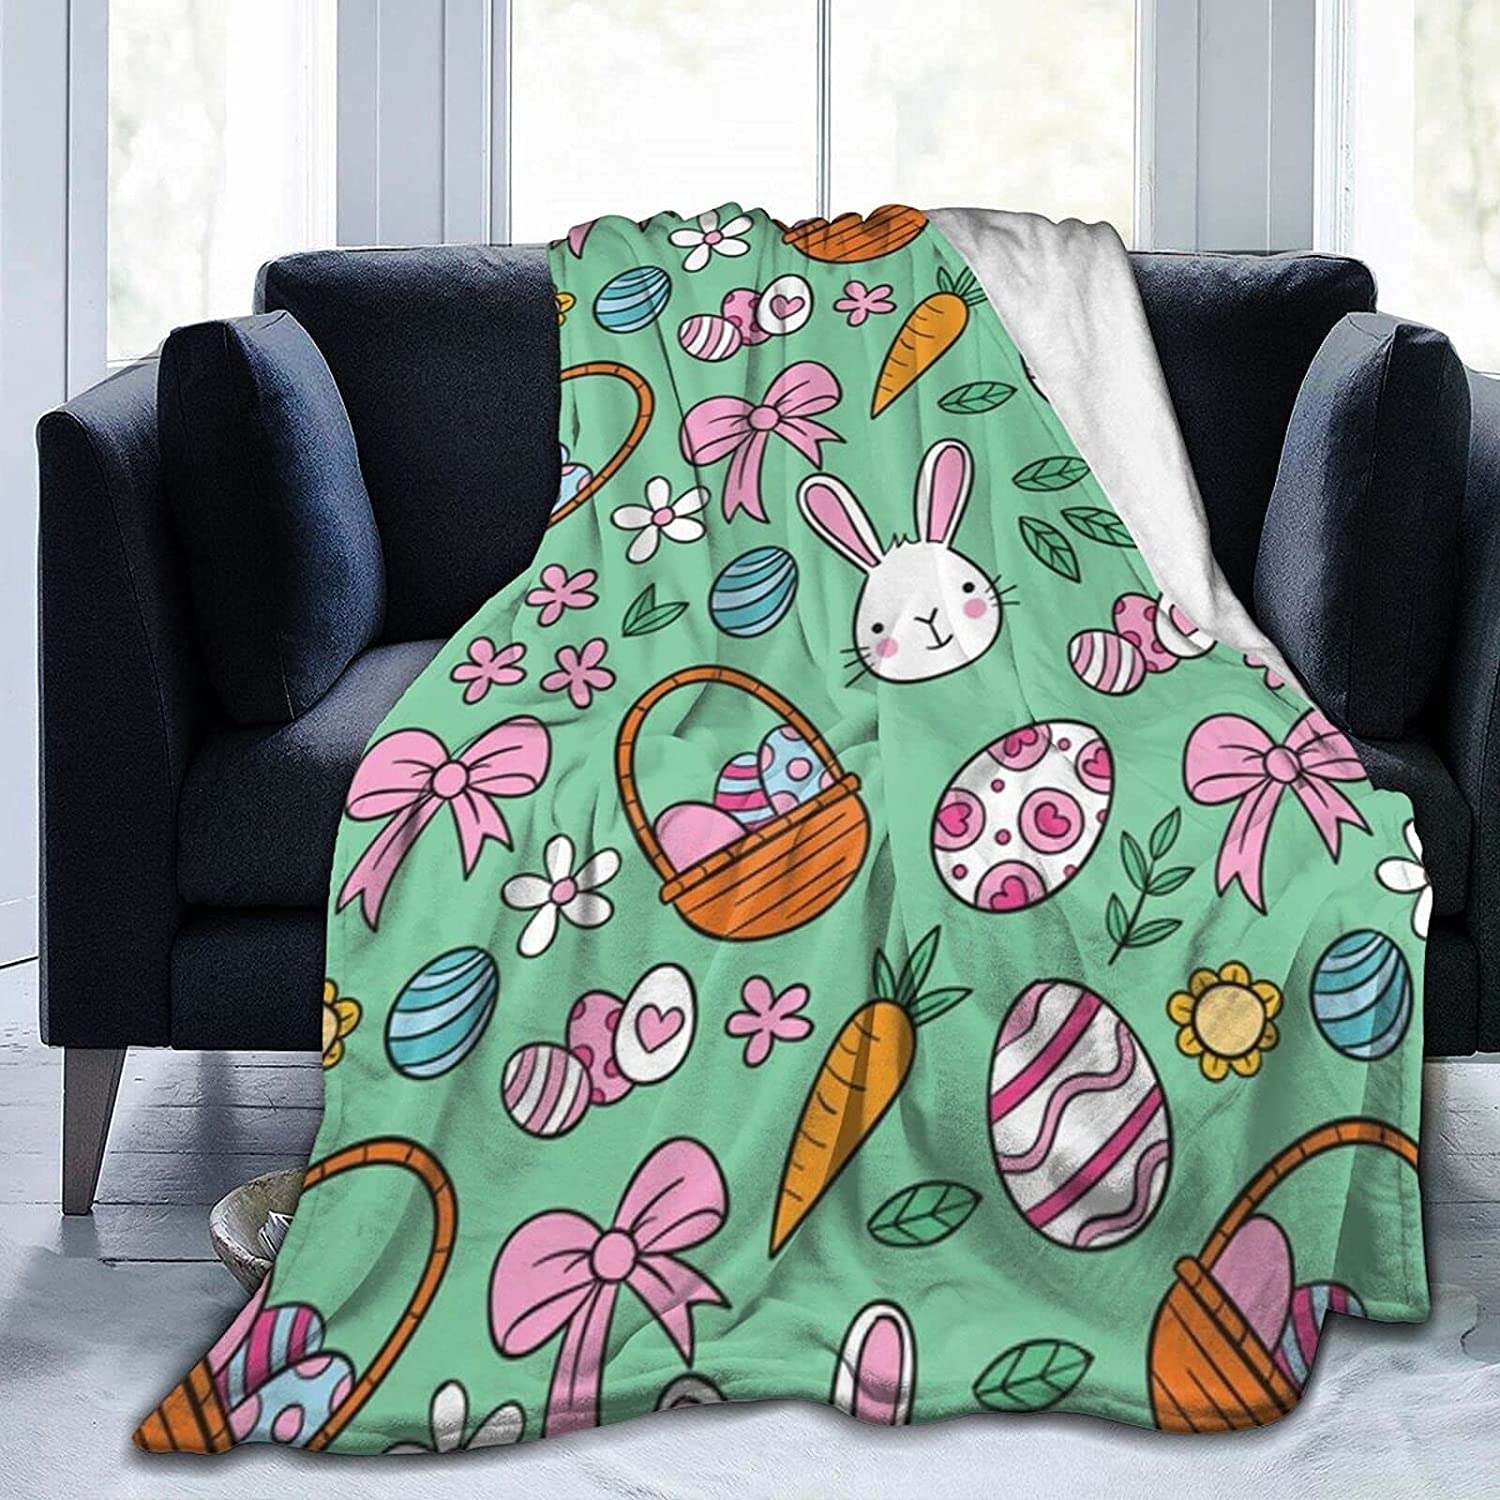 Fuzzy Throw Max 63% OFF Blanket Surprise price Plush Fleece for Blankets Unisex Adults To